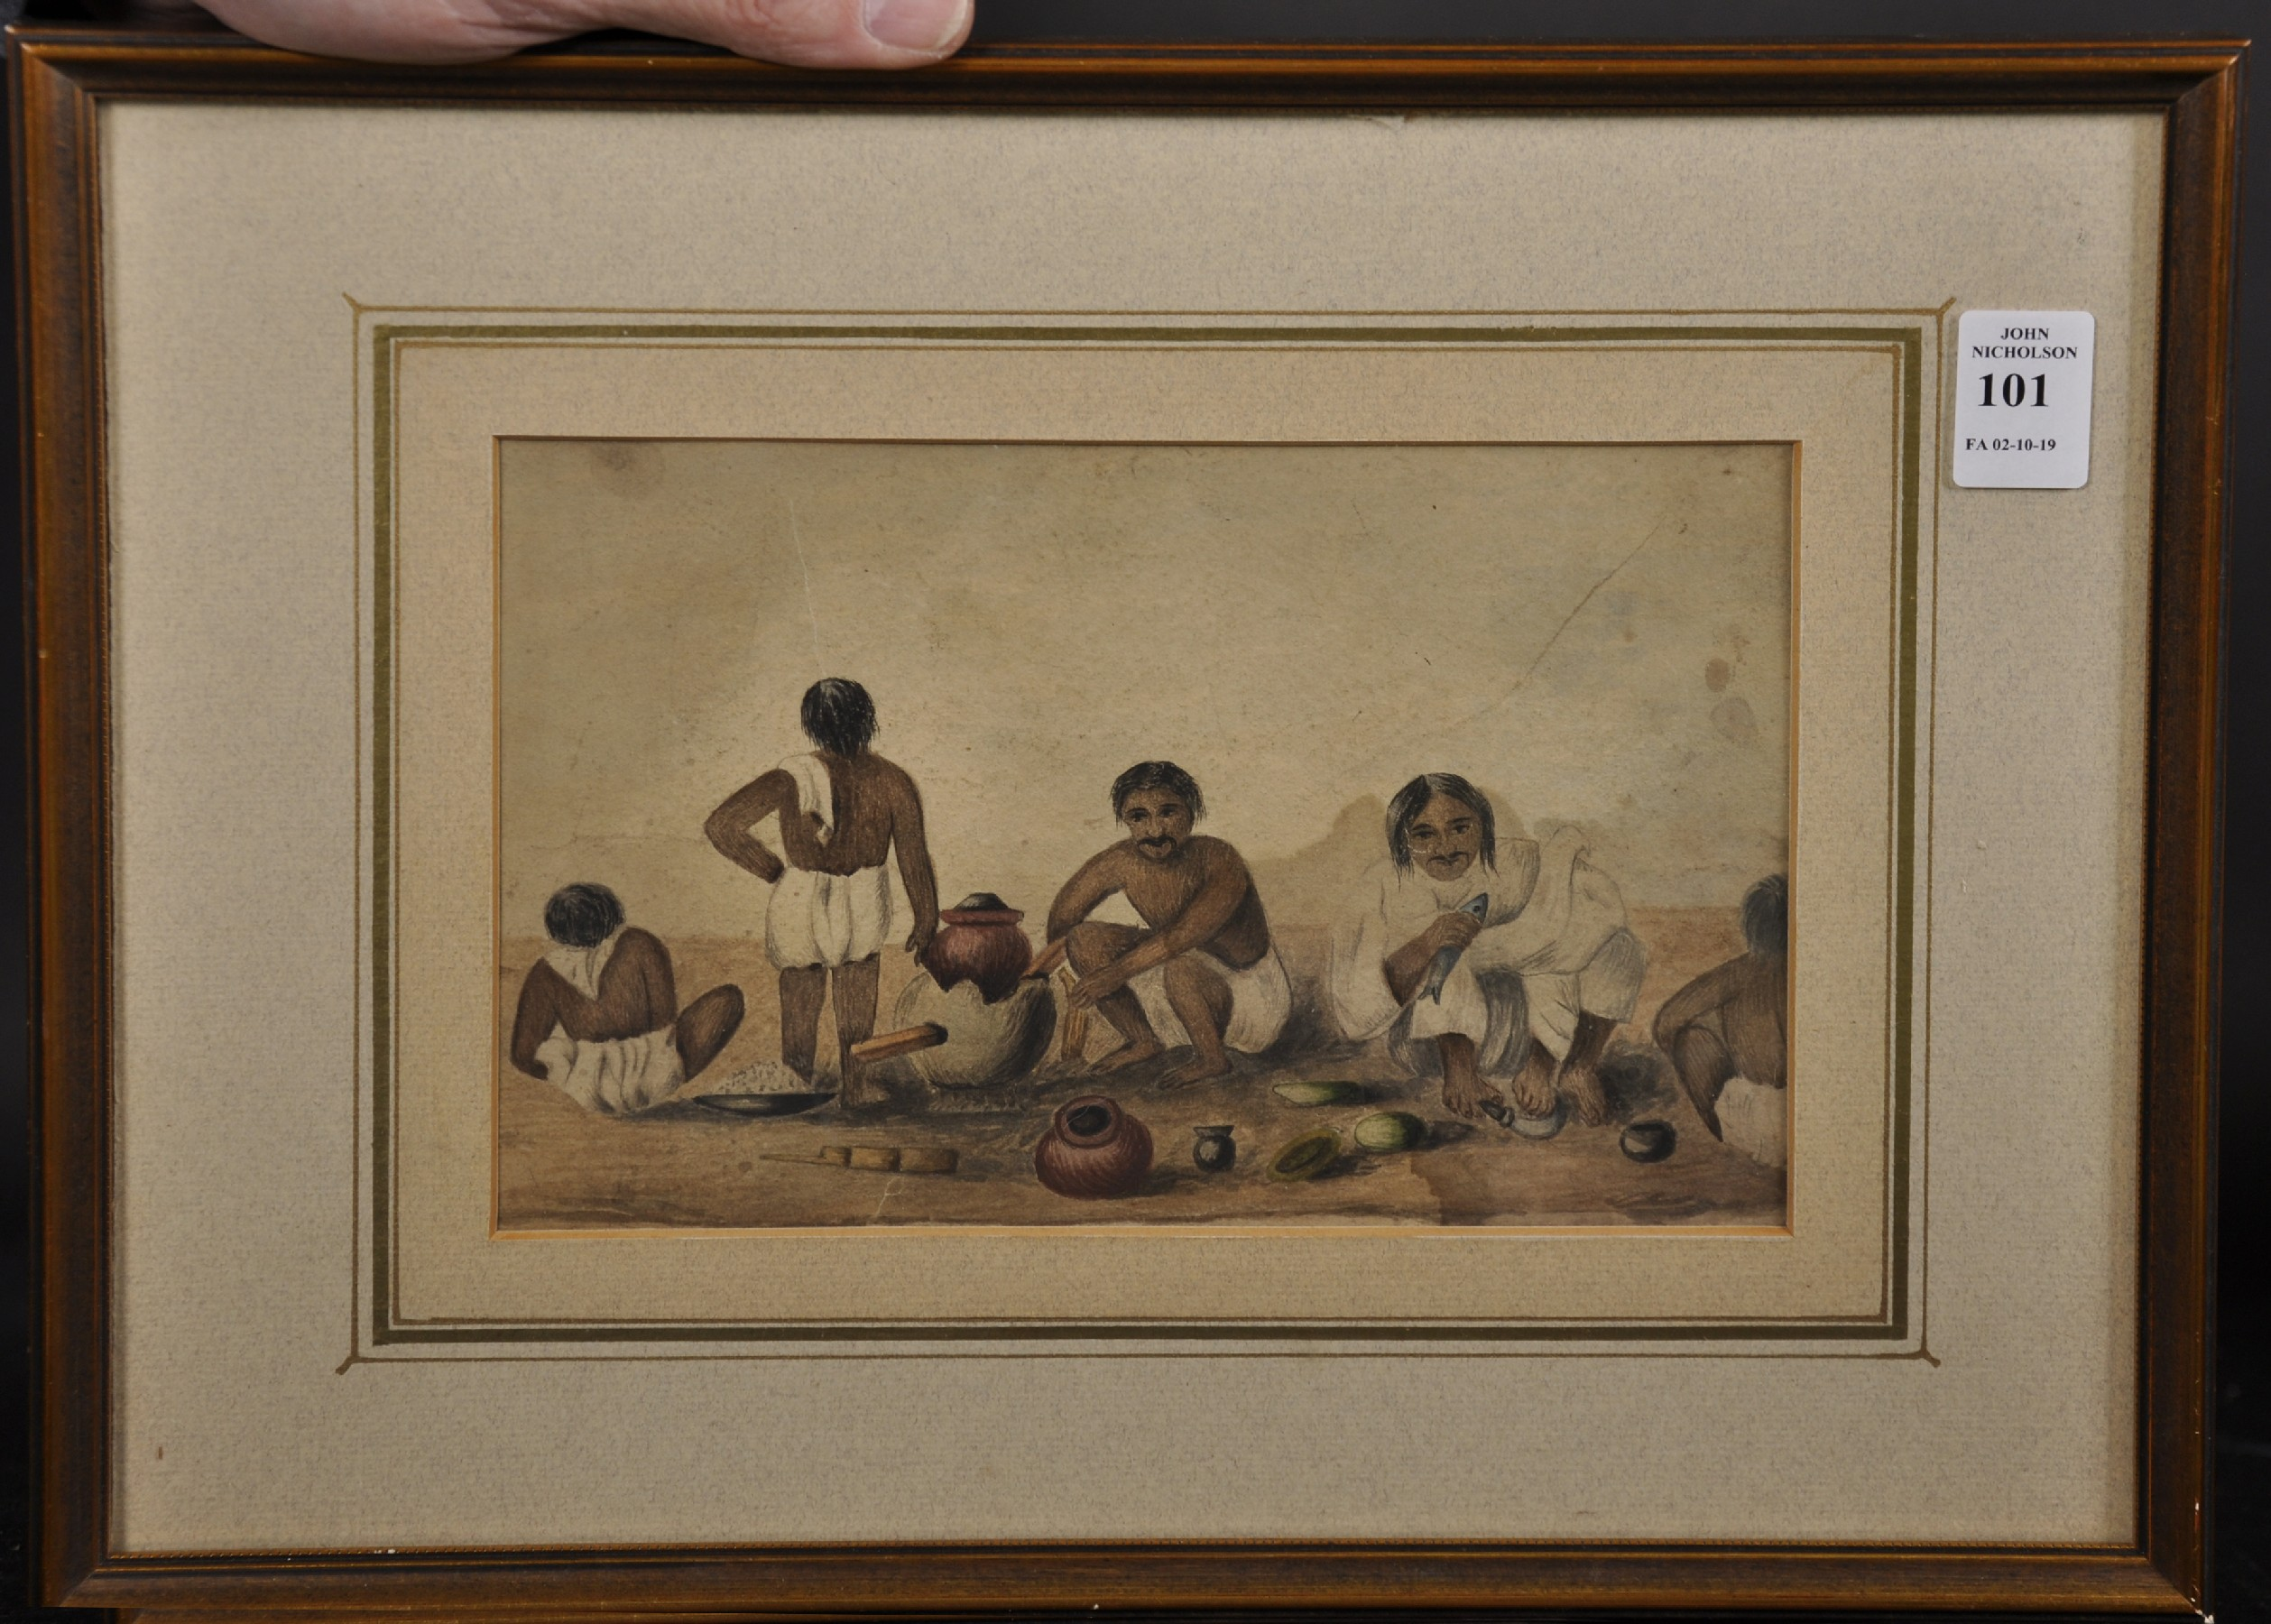 """19th Century Anglo-Indian School. Figures Preparing a Meal, Watercolour, 5.5"""" x 8.5"""". - Image 2 of 3"""